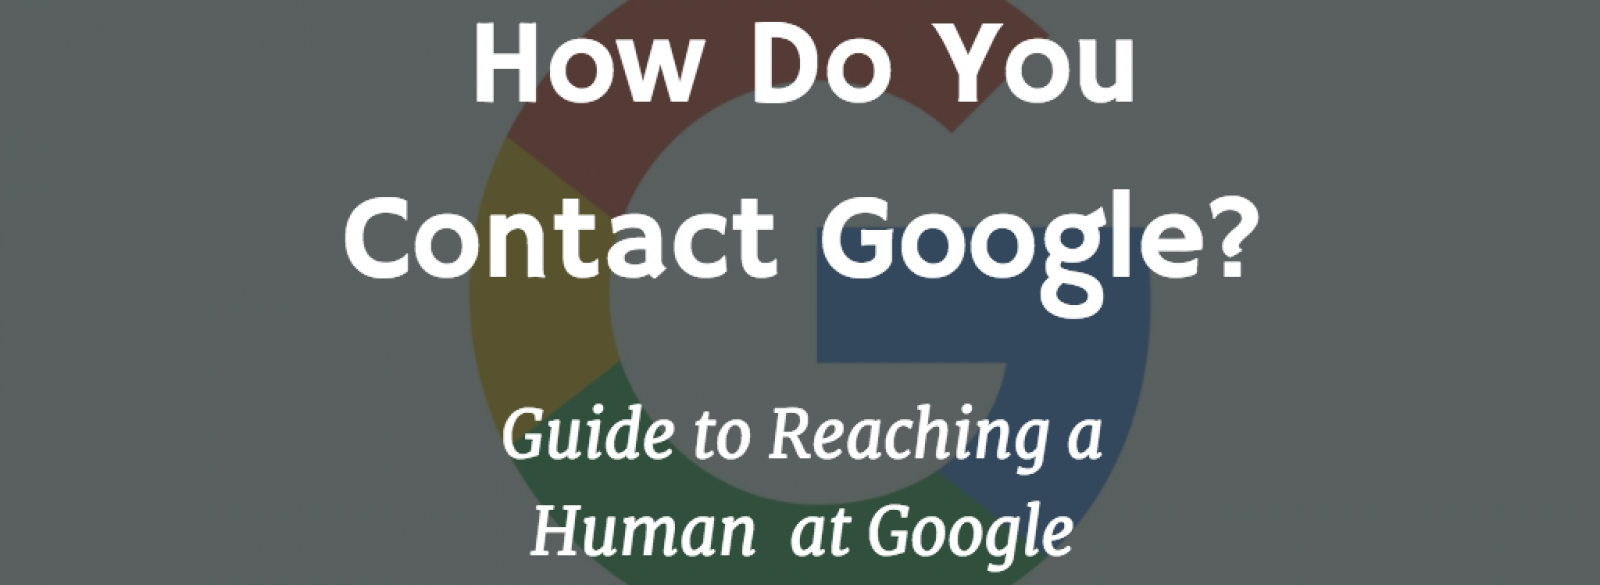 how to contact google support